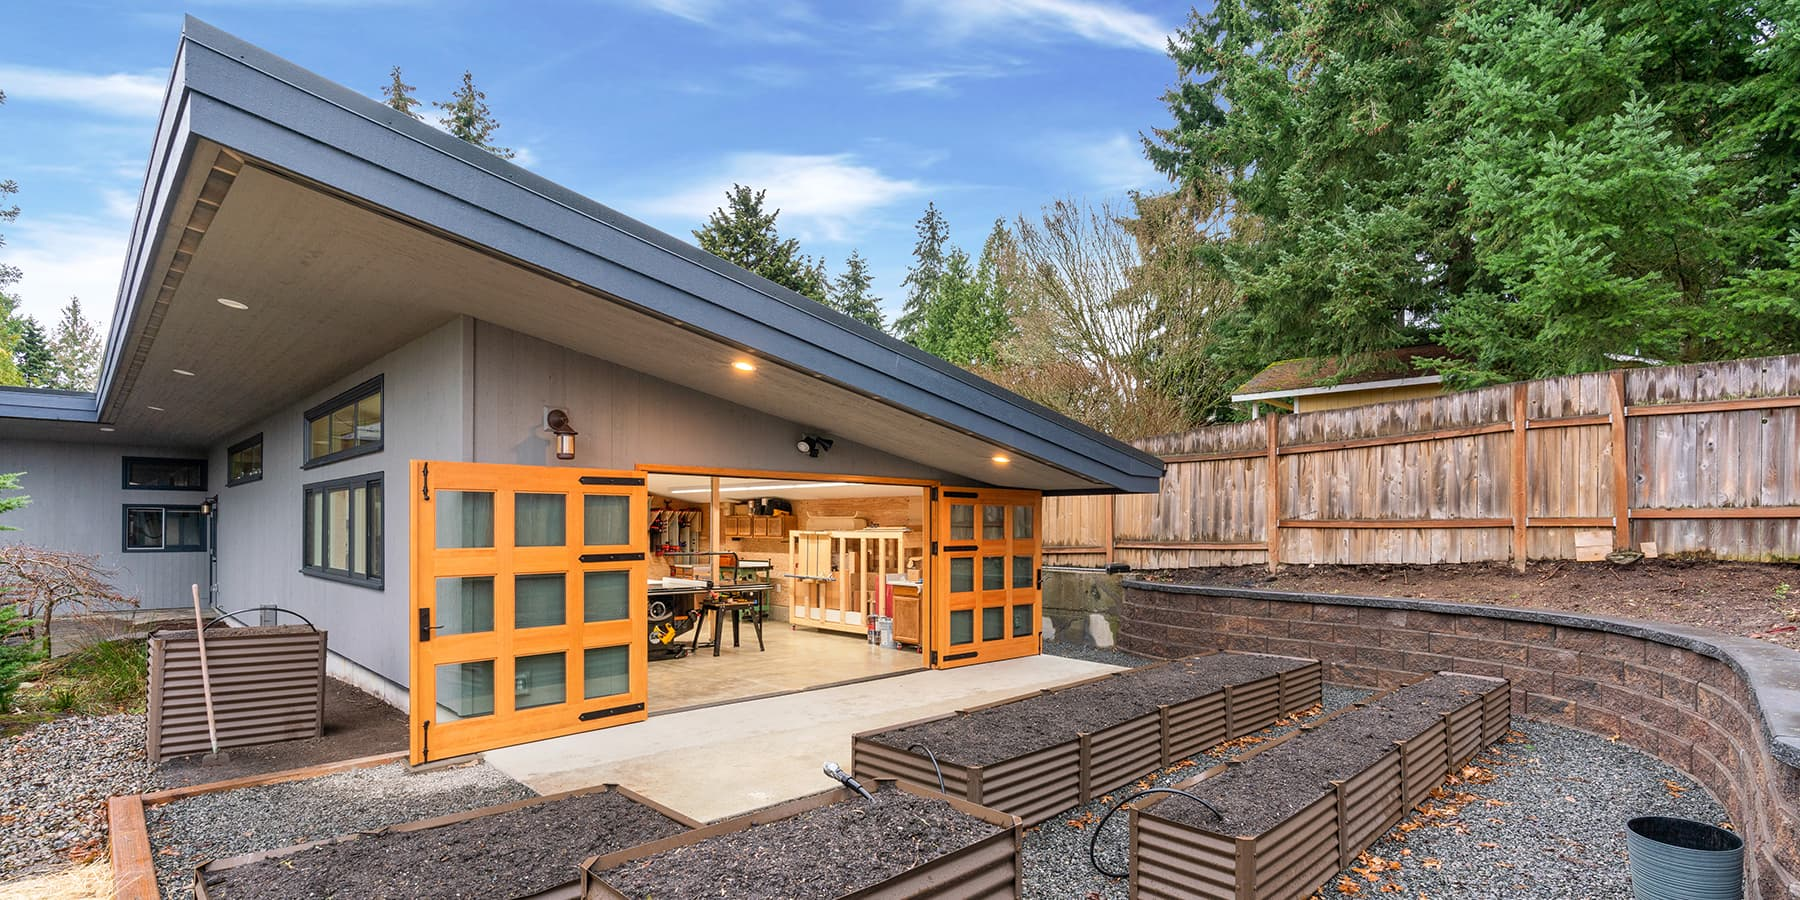 McIntyre Furniture woodshop exterior view. Image highlights set of Vertical Grain Douglas Fir Carriages Doors designed by RealCraft. The carriage doors have 9 individual glass panes on each door and strap hinges were installed for aesthetics.